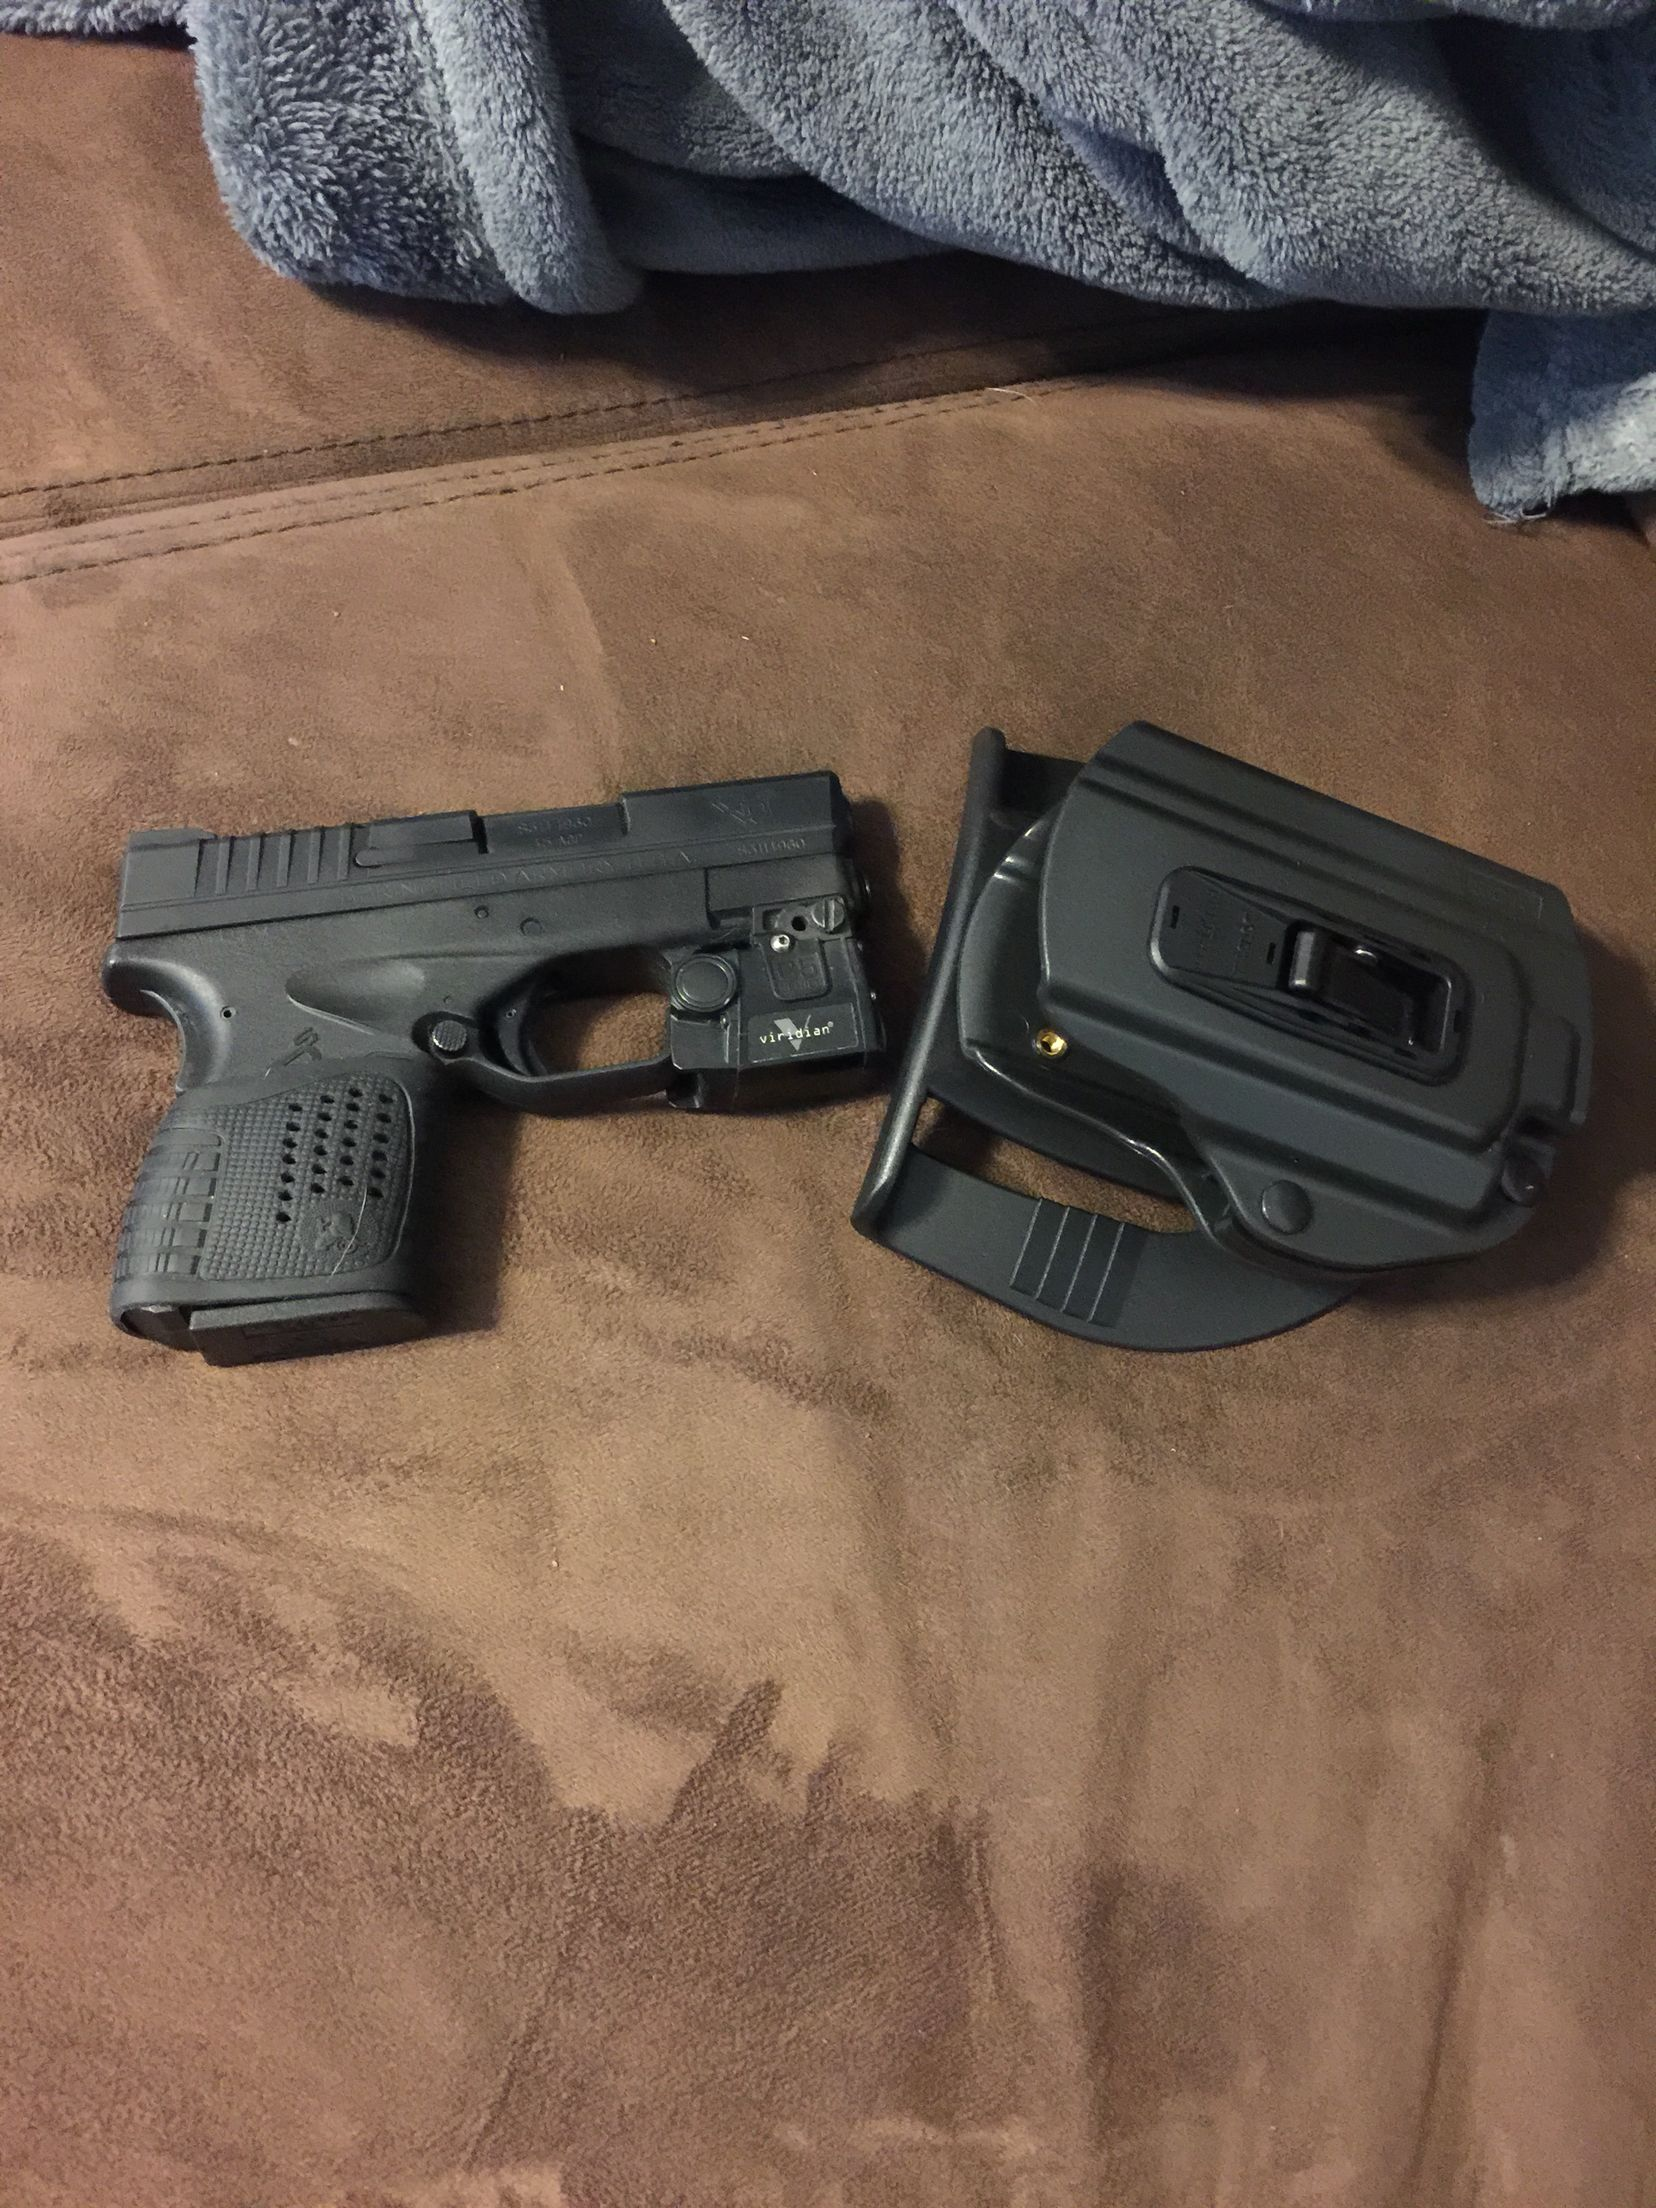 Springfield xds  45 3 3 with veridian light and locking holster